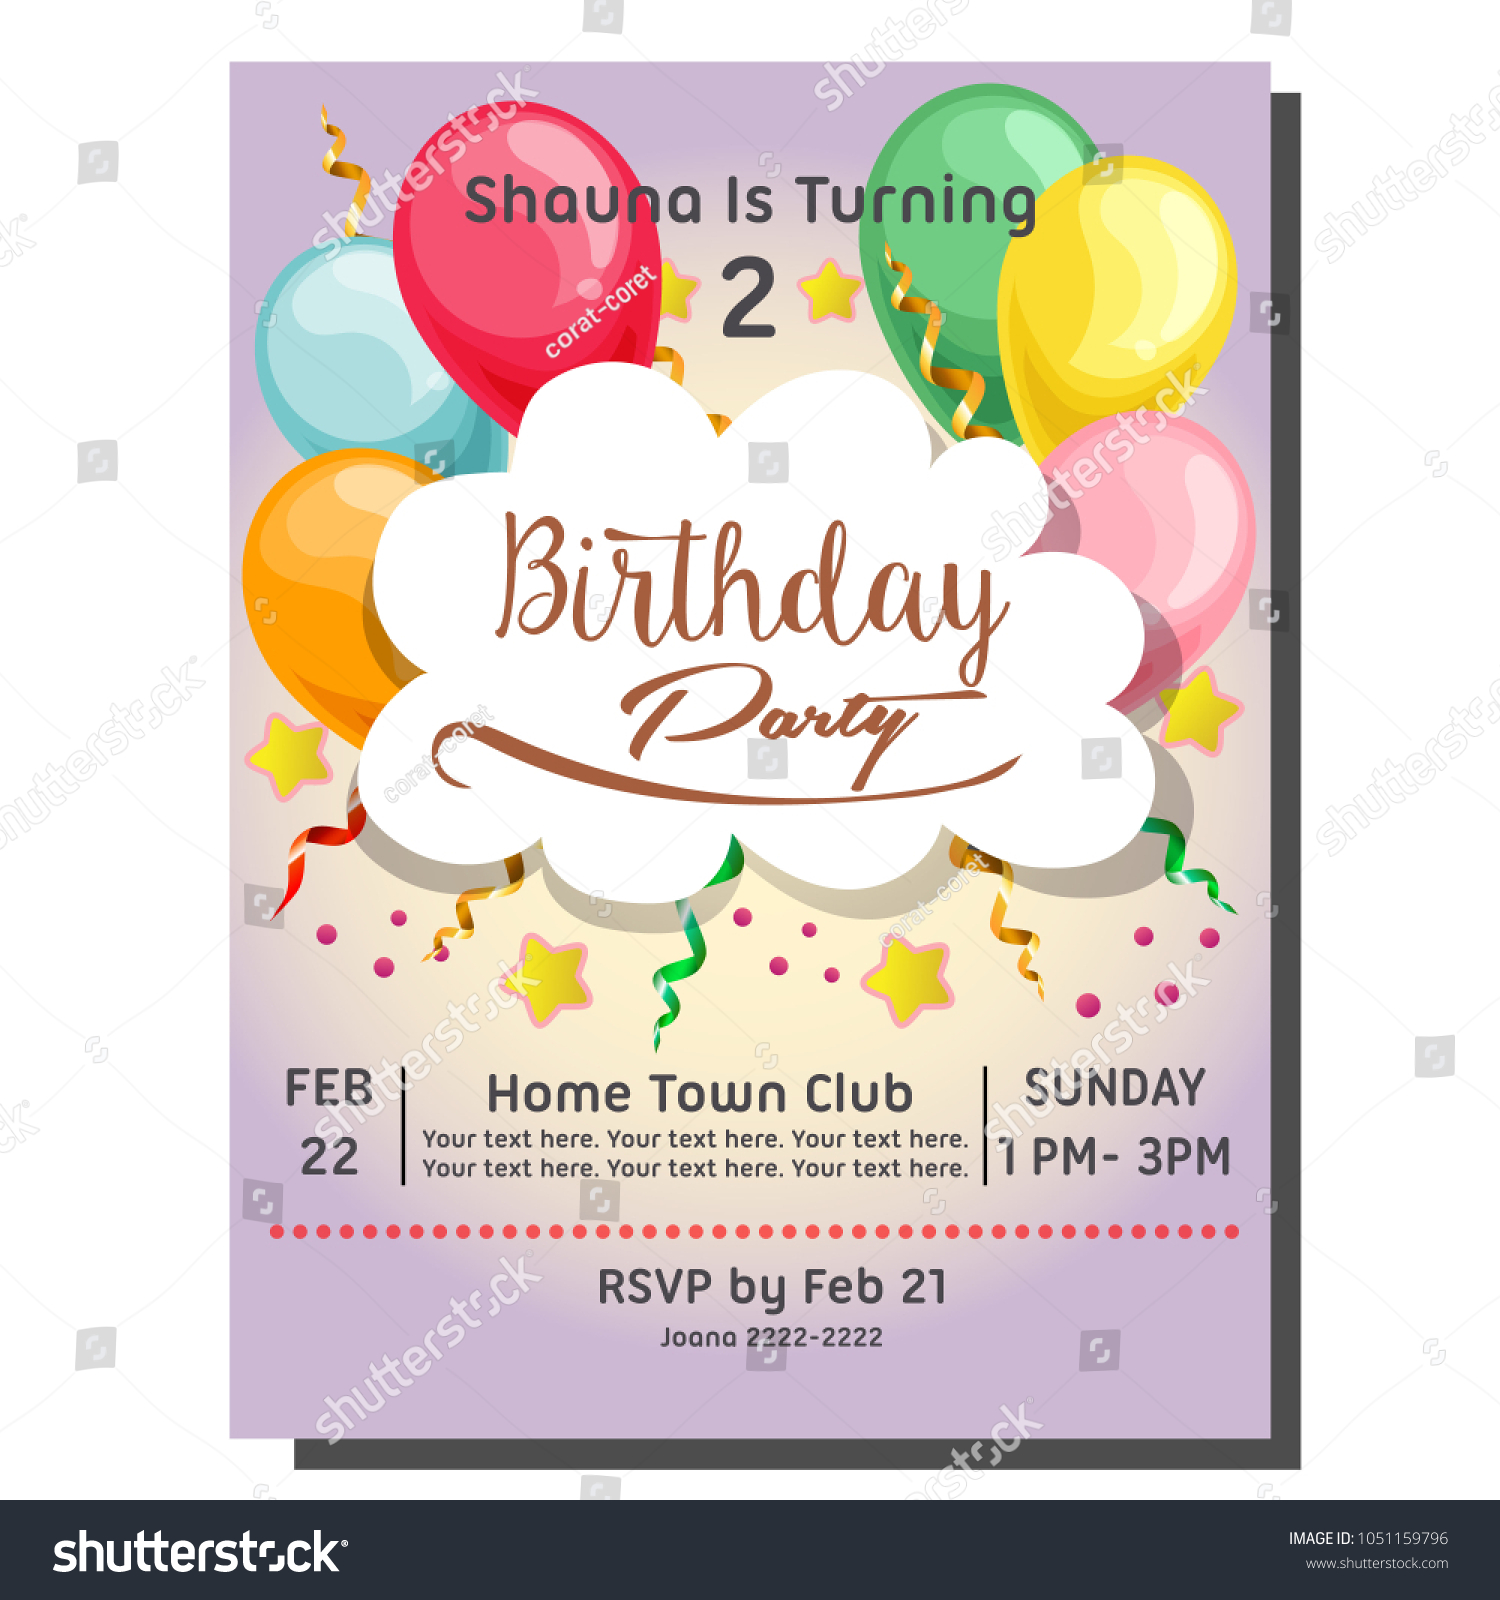 2nd Birthday Party Invitation Card Balloon Stock Vector HD (Royalty ...